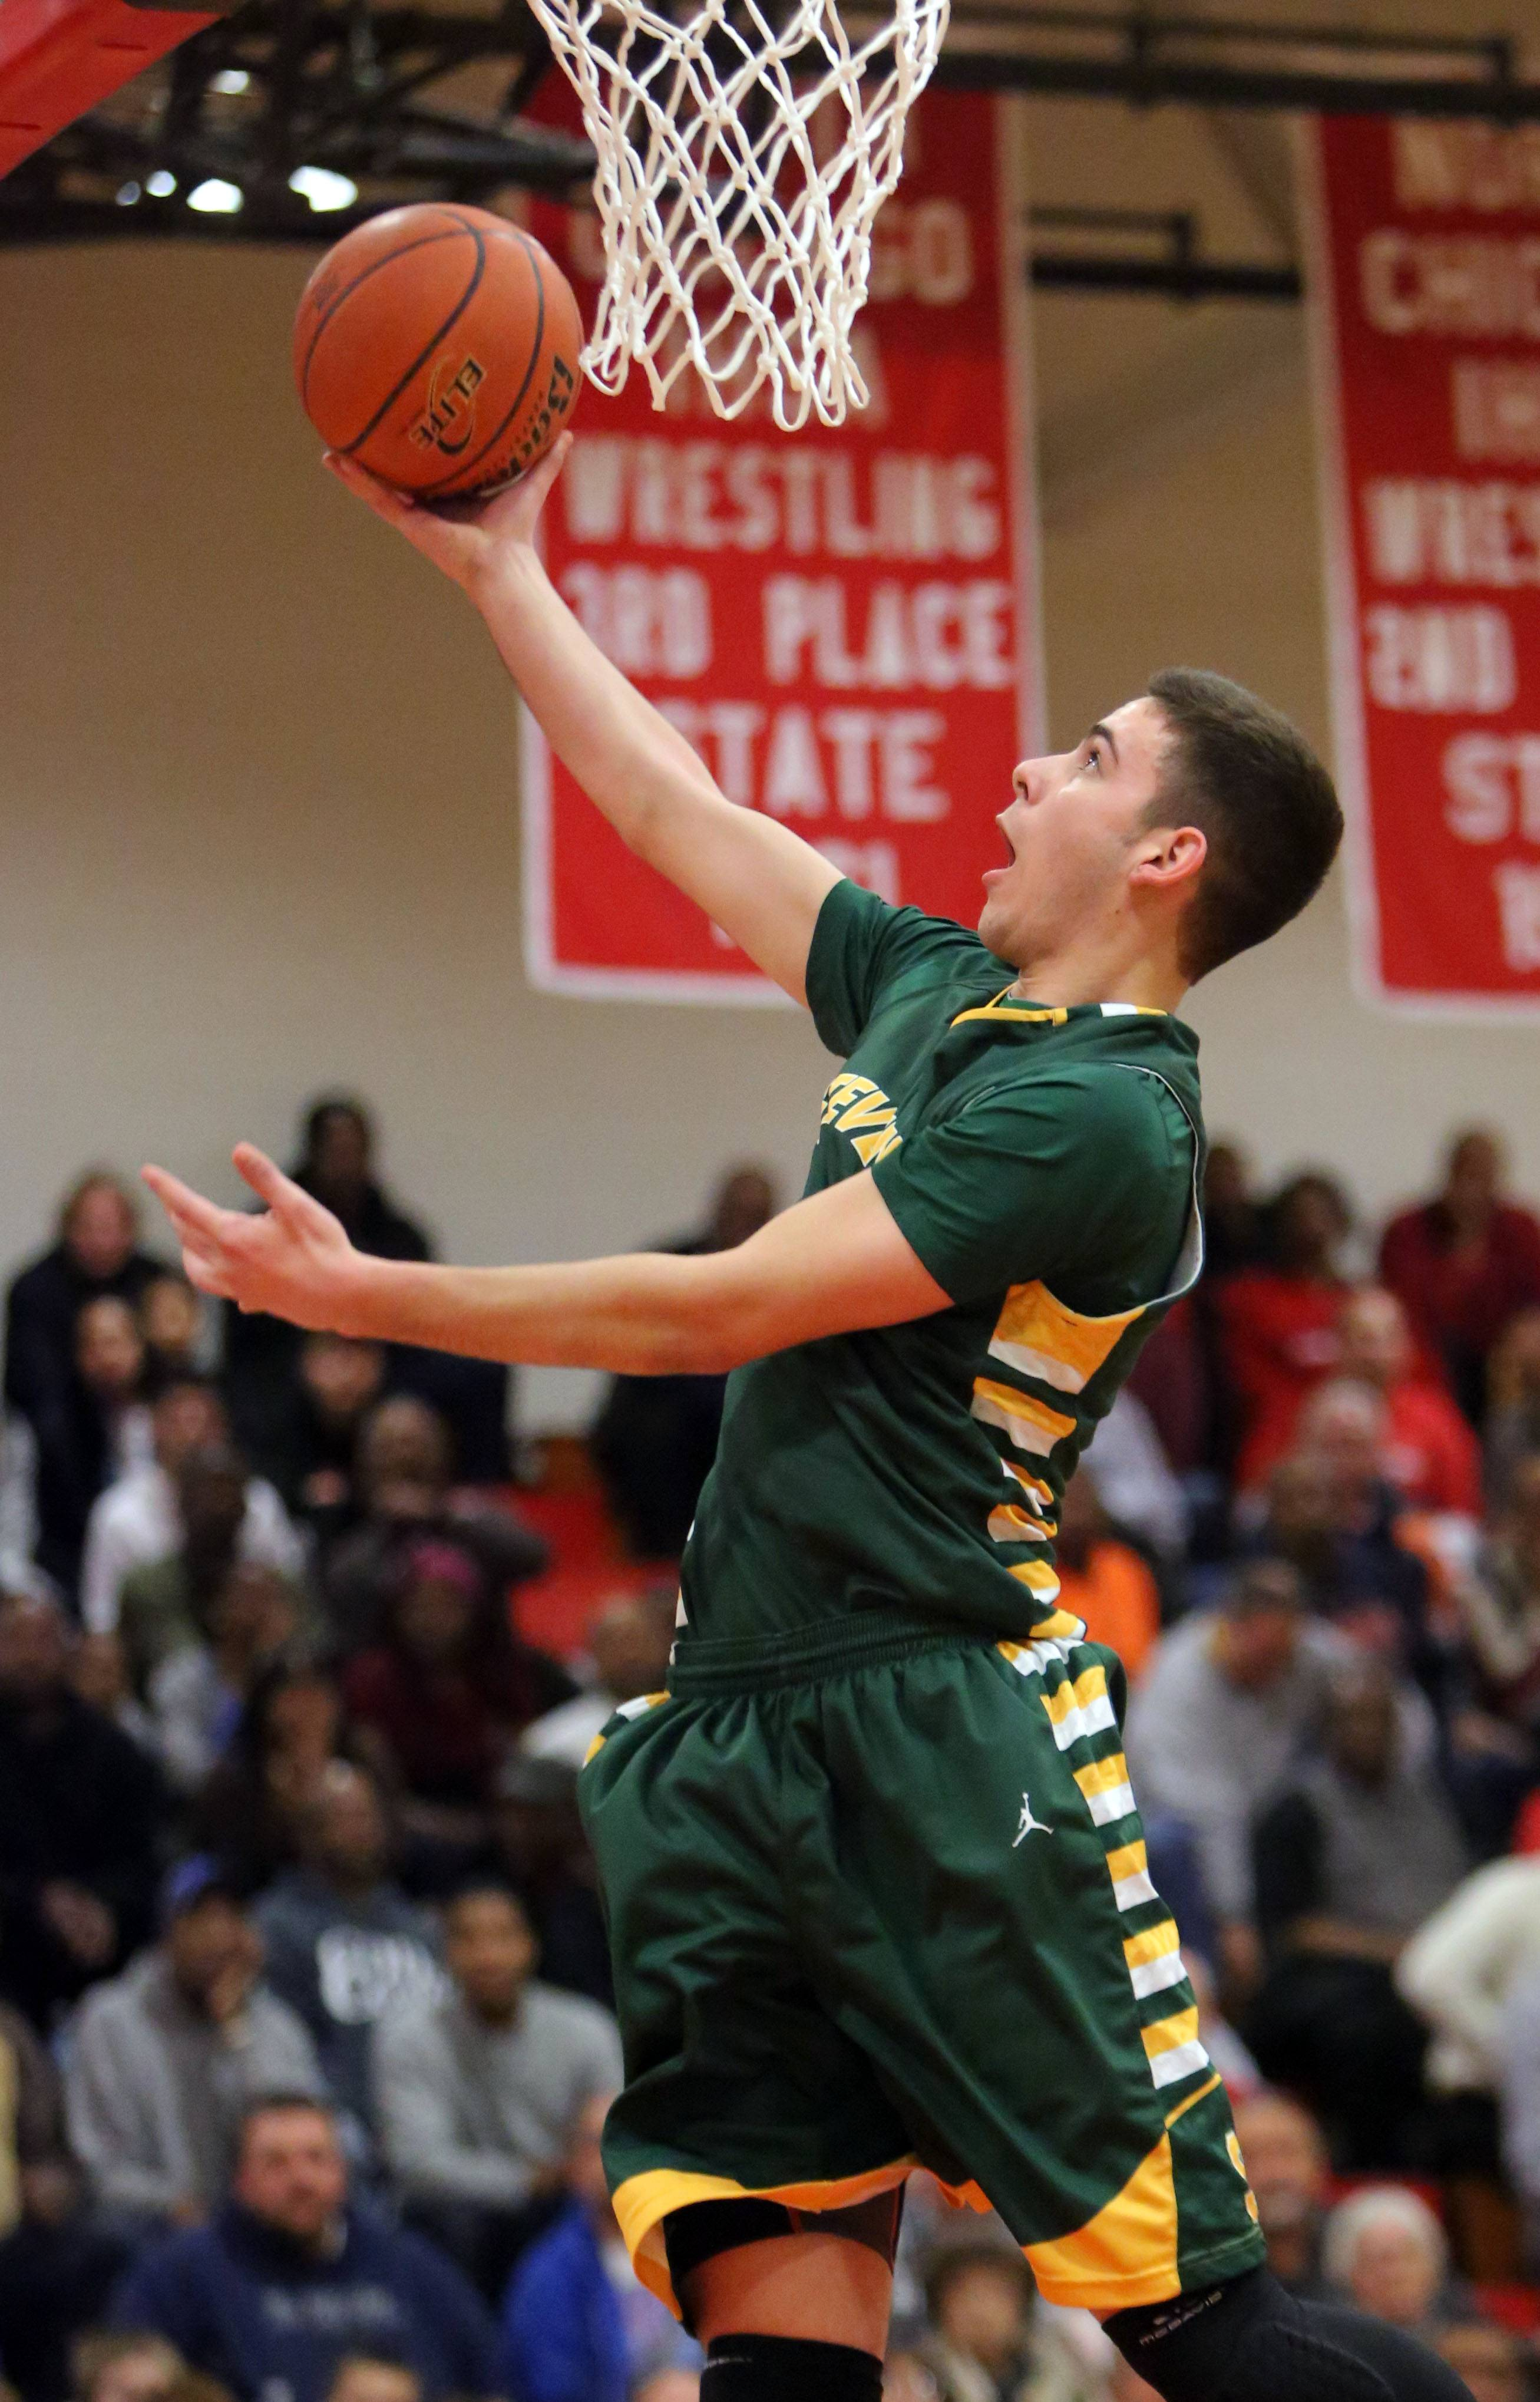 Stevenson's Parker Nichols drives in for an uncontested layup during their victory over North Chicago in the North Suburban Conference championship game Wednesday night at North Chicago.